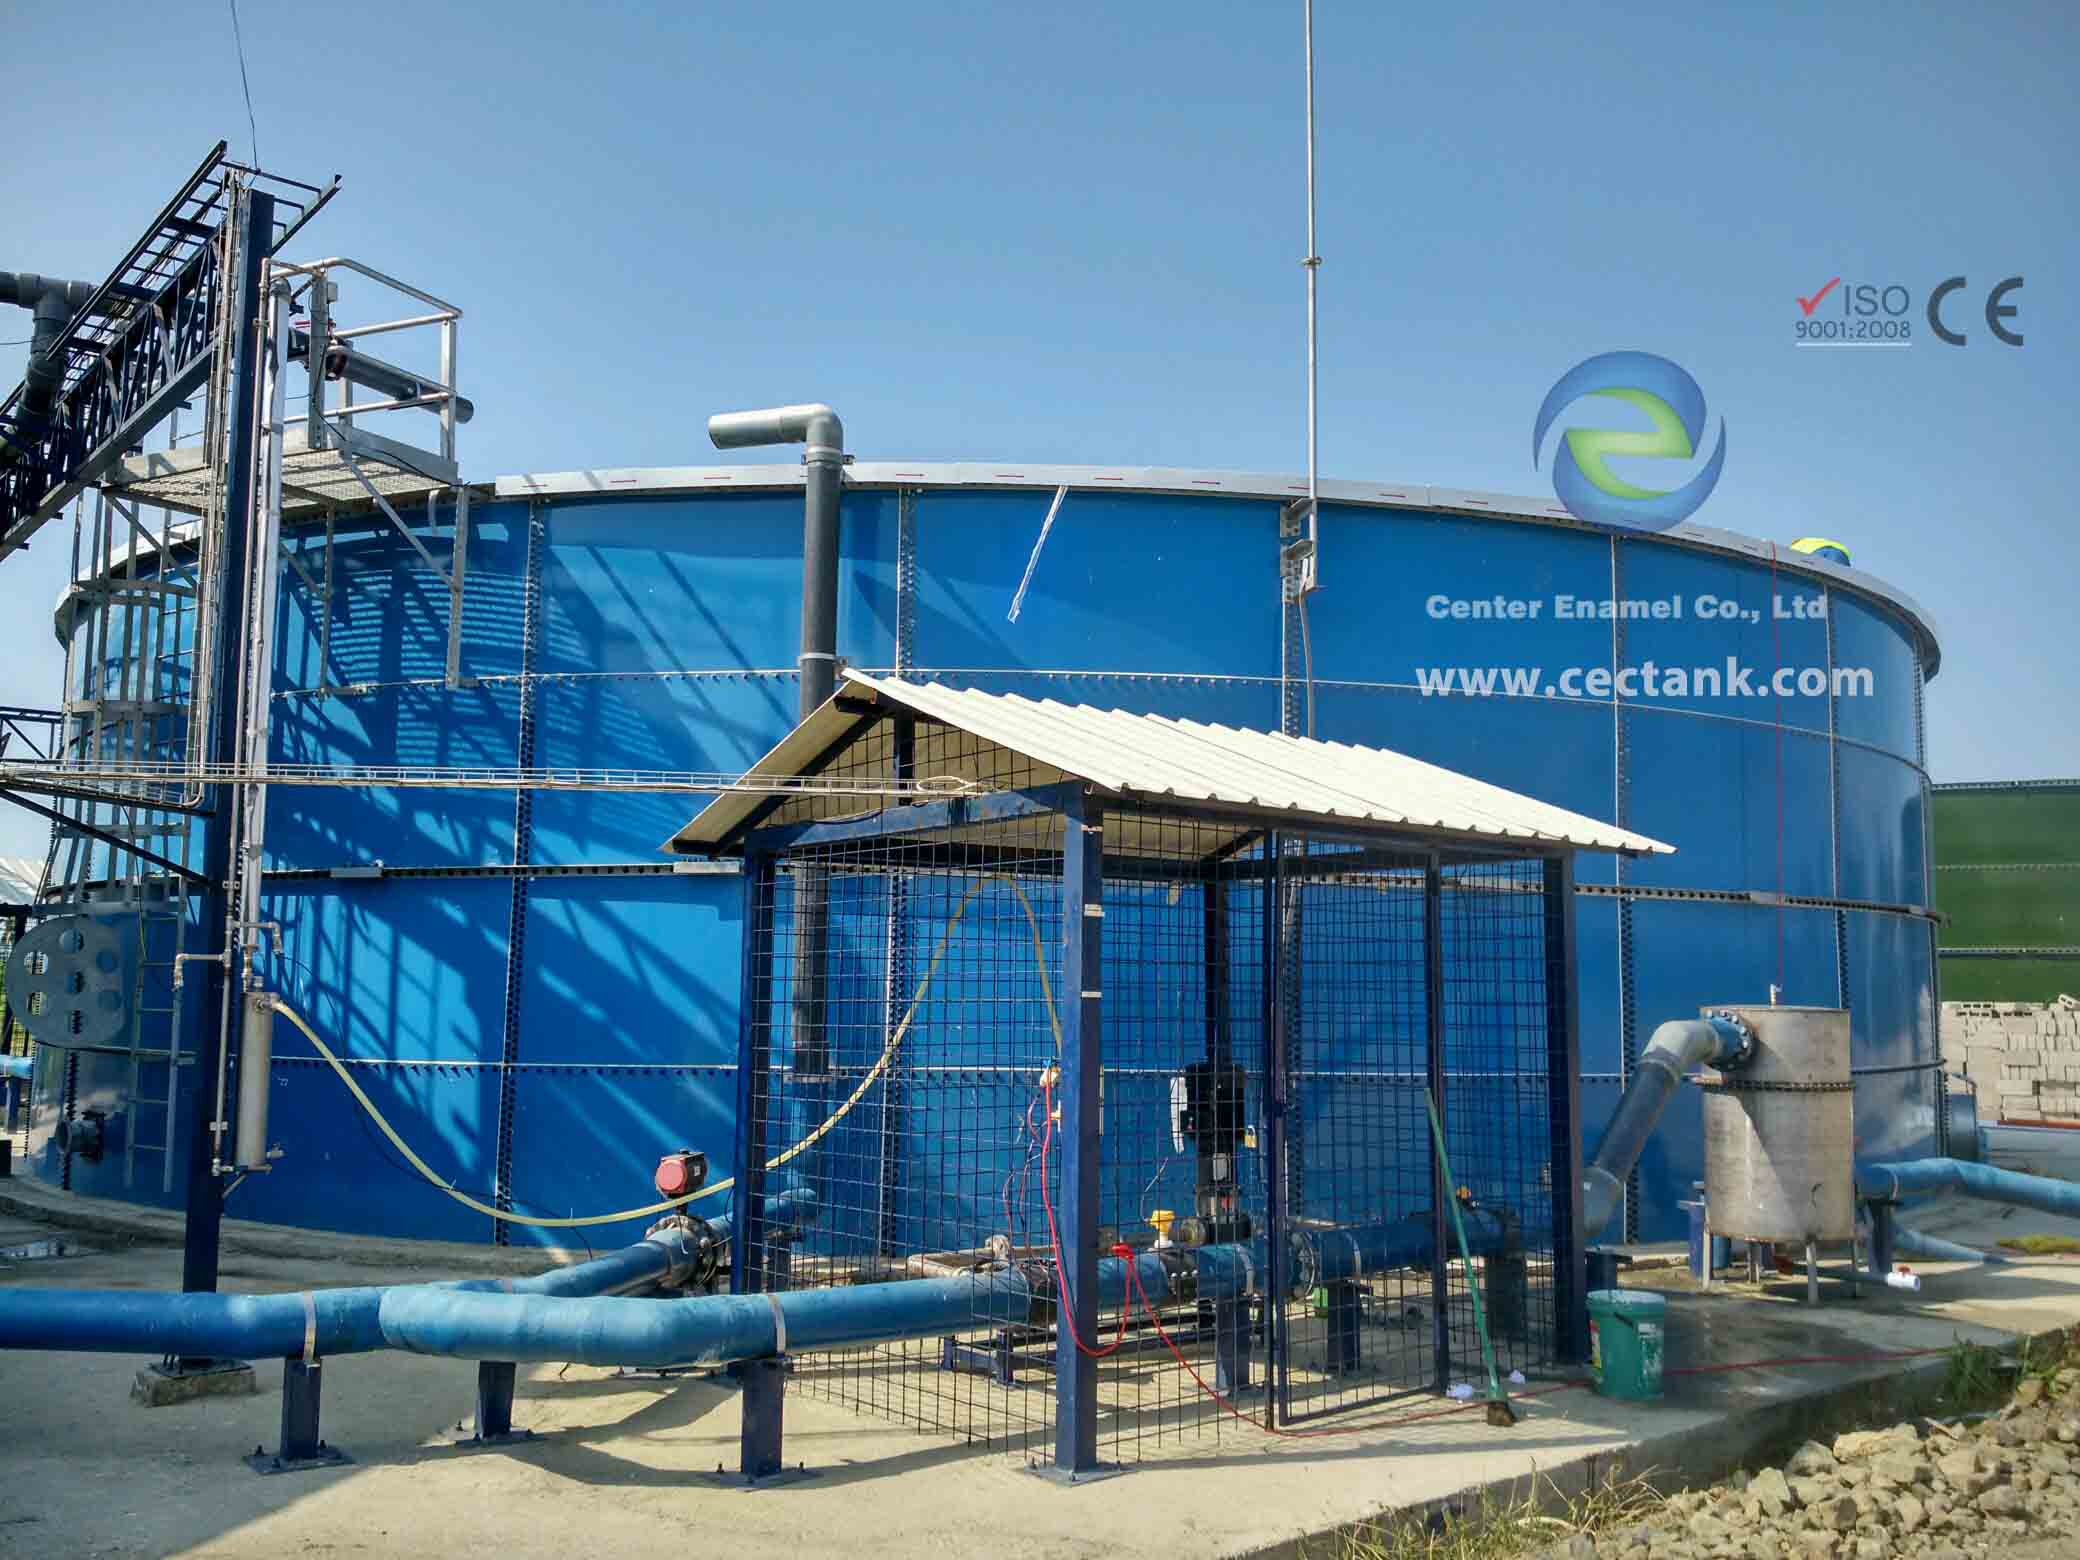 High Corrosion Resistant Sludge Storage Tank For WasteWater Treatment Engineering